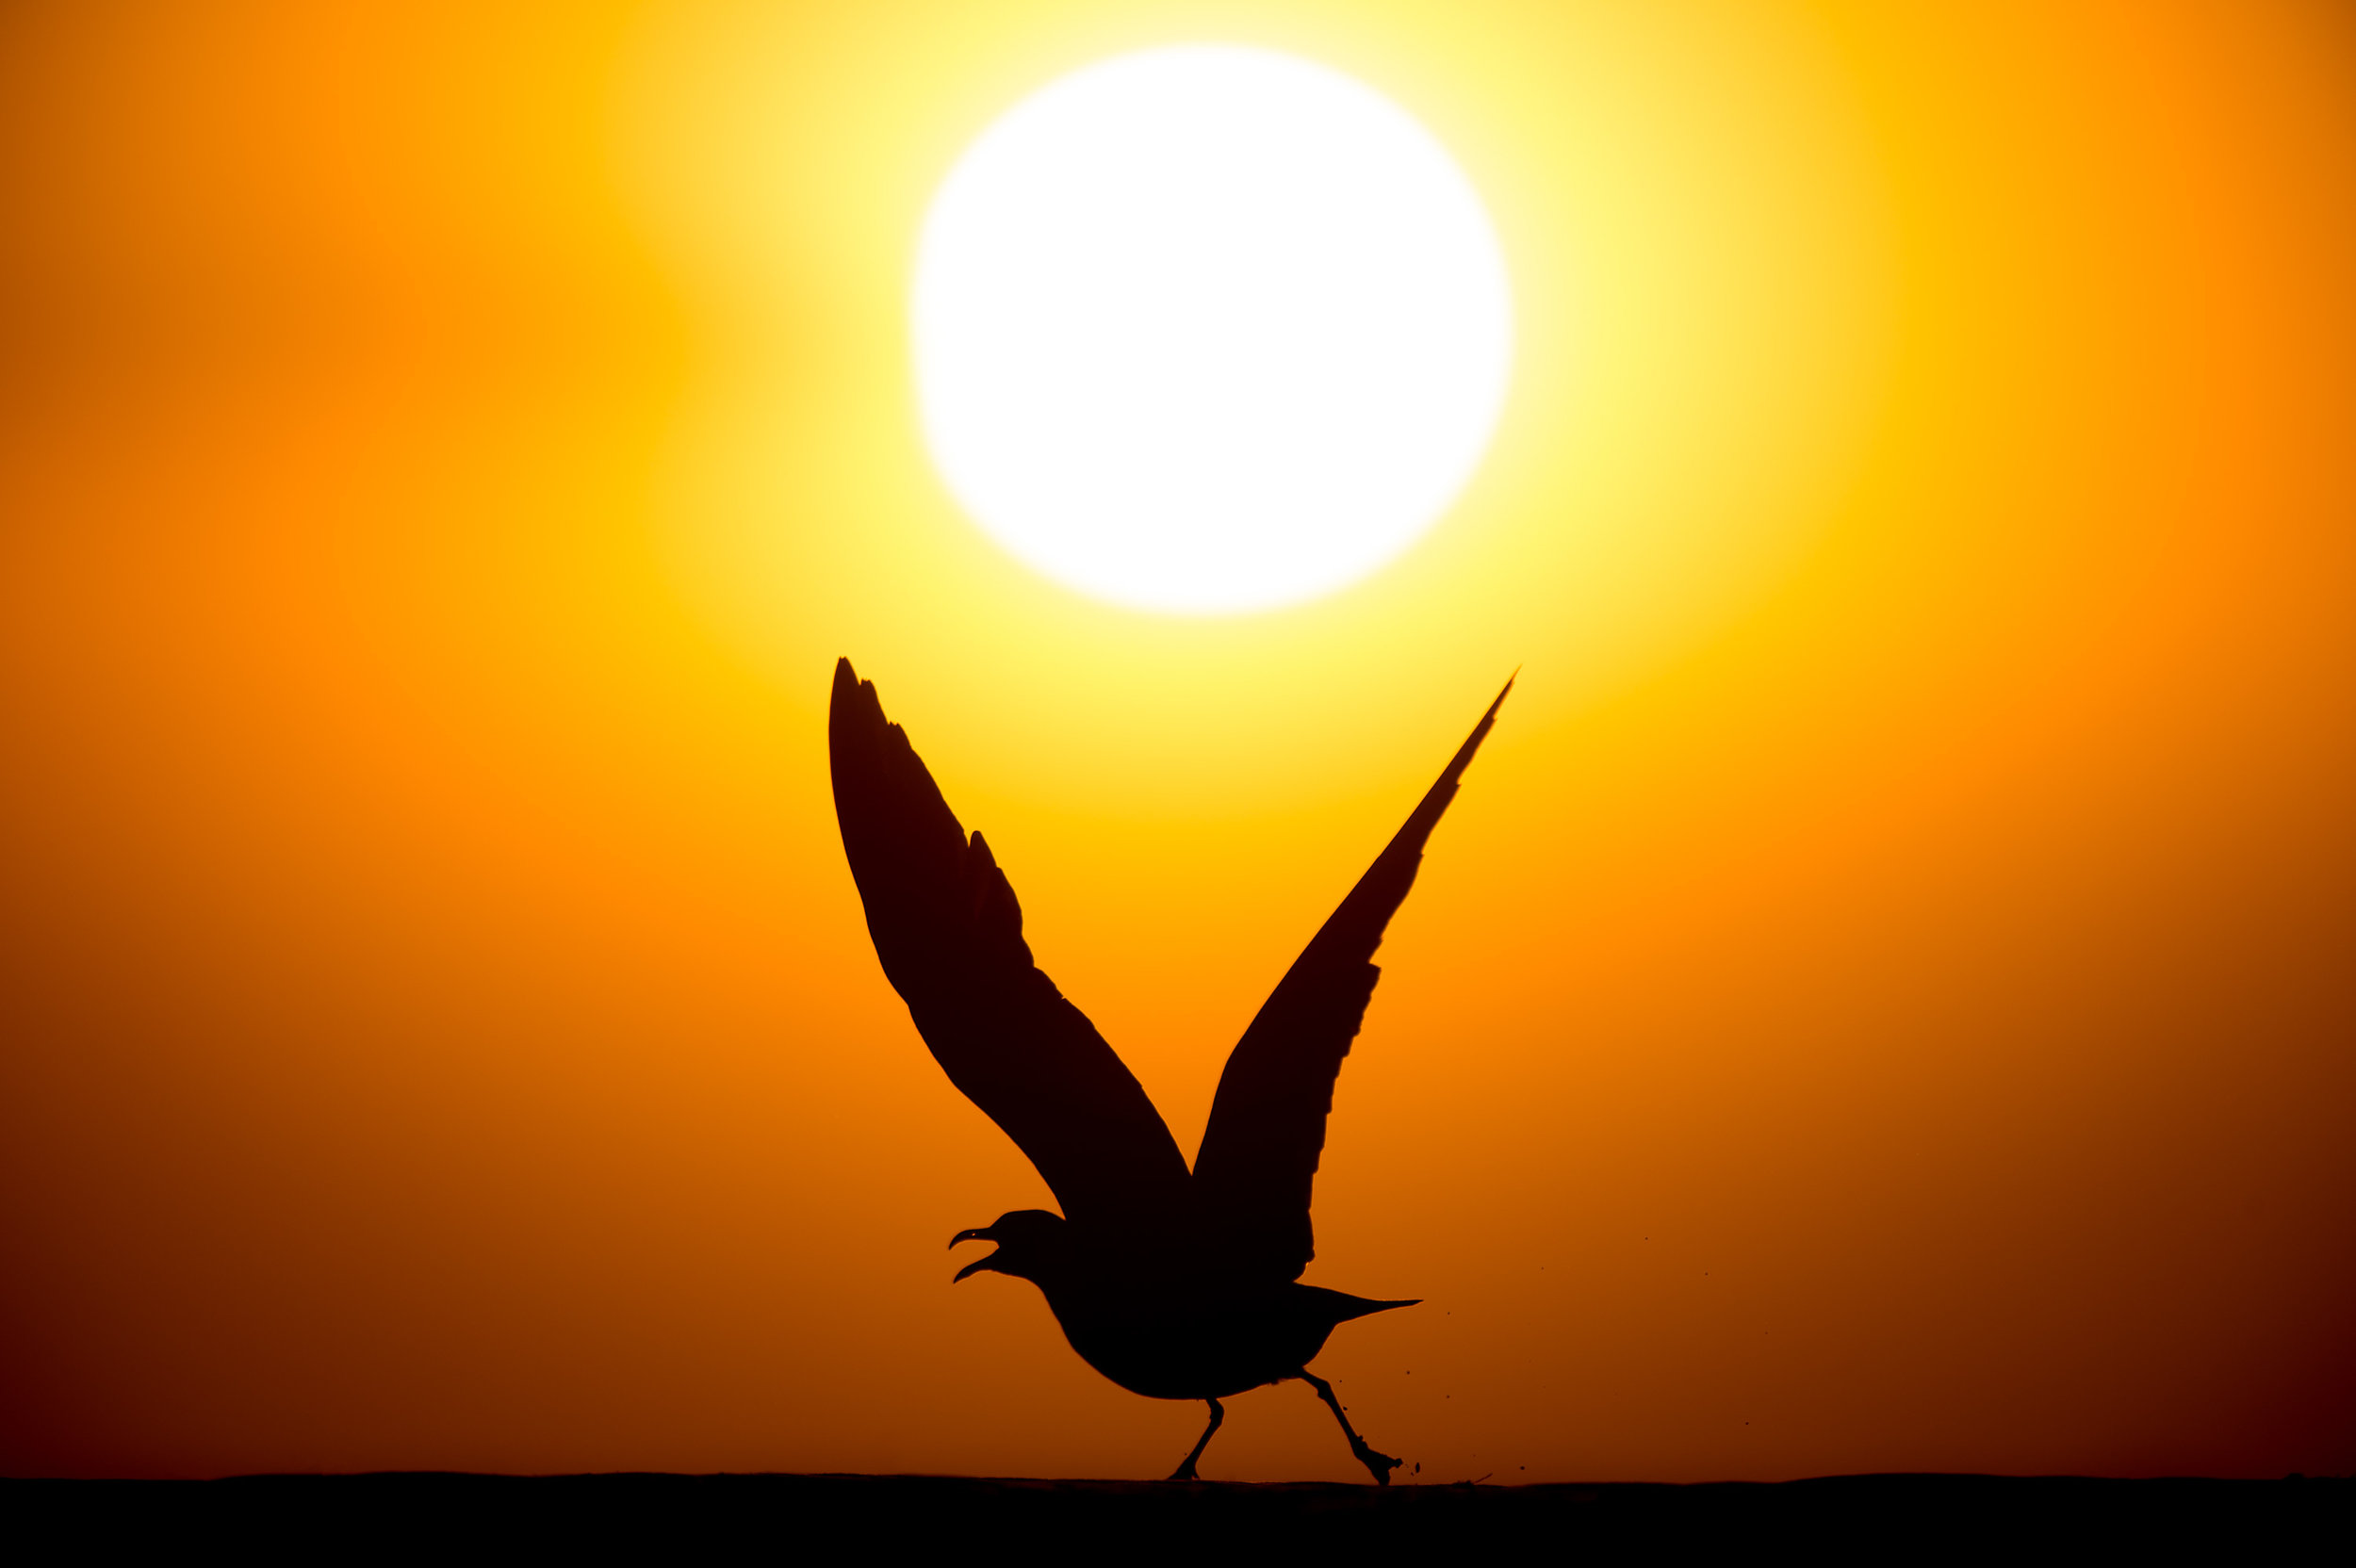 A Laughing Gull takes off, silhouetted against the setting sun.